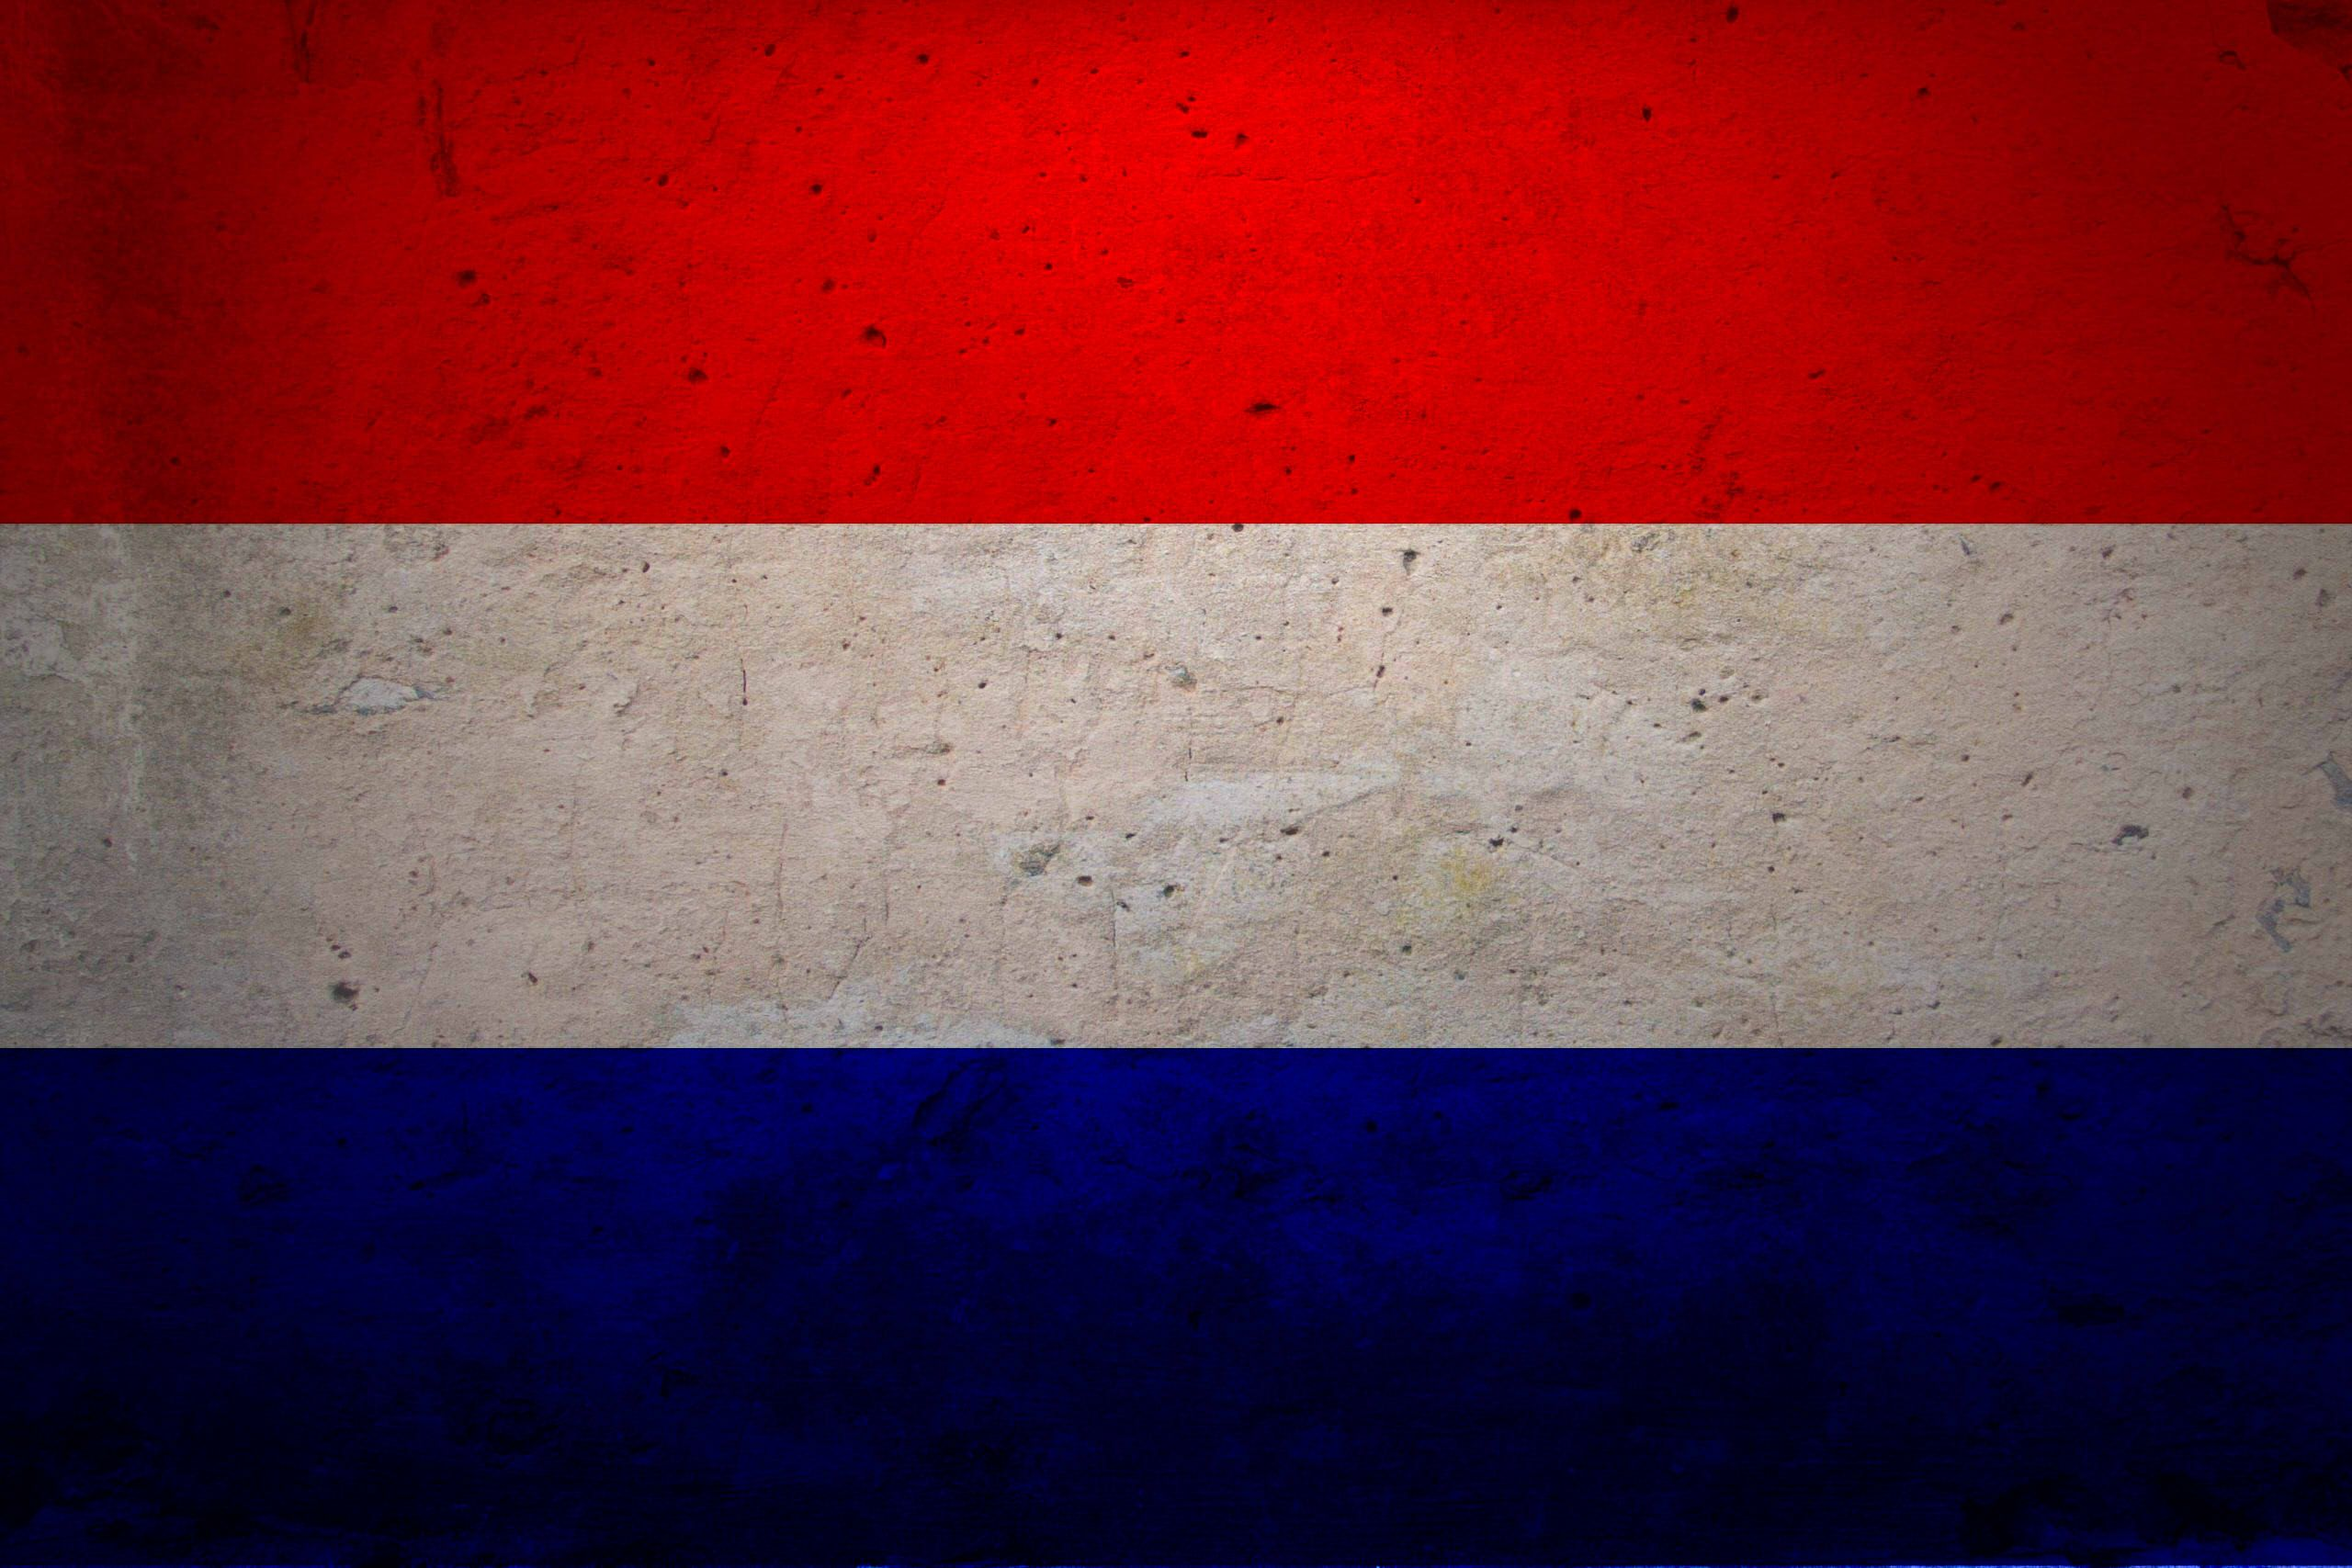 2560x1707 Flag of the Netherlands HD Wallpaper | Background Image ...